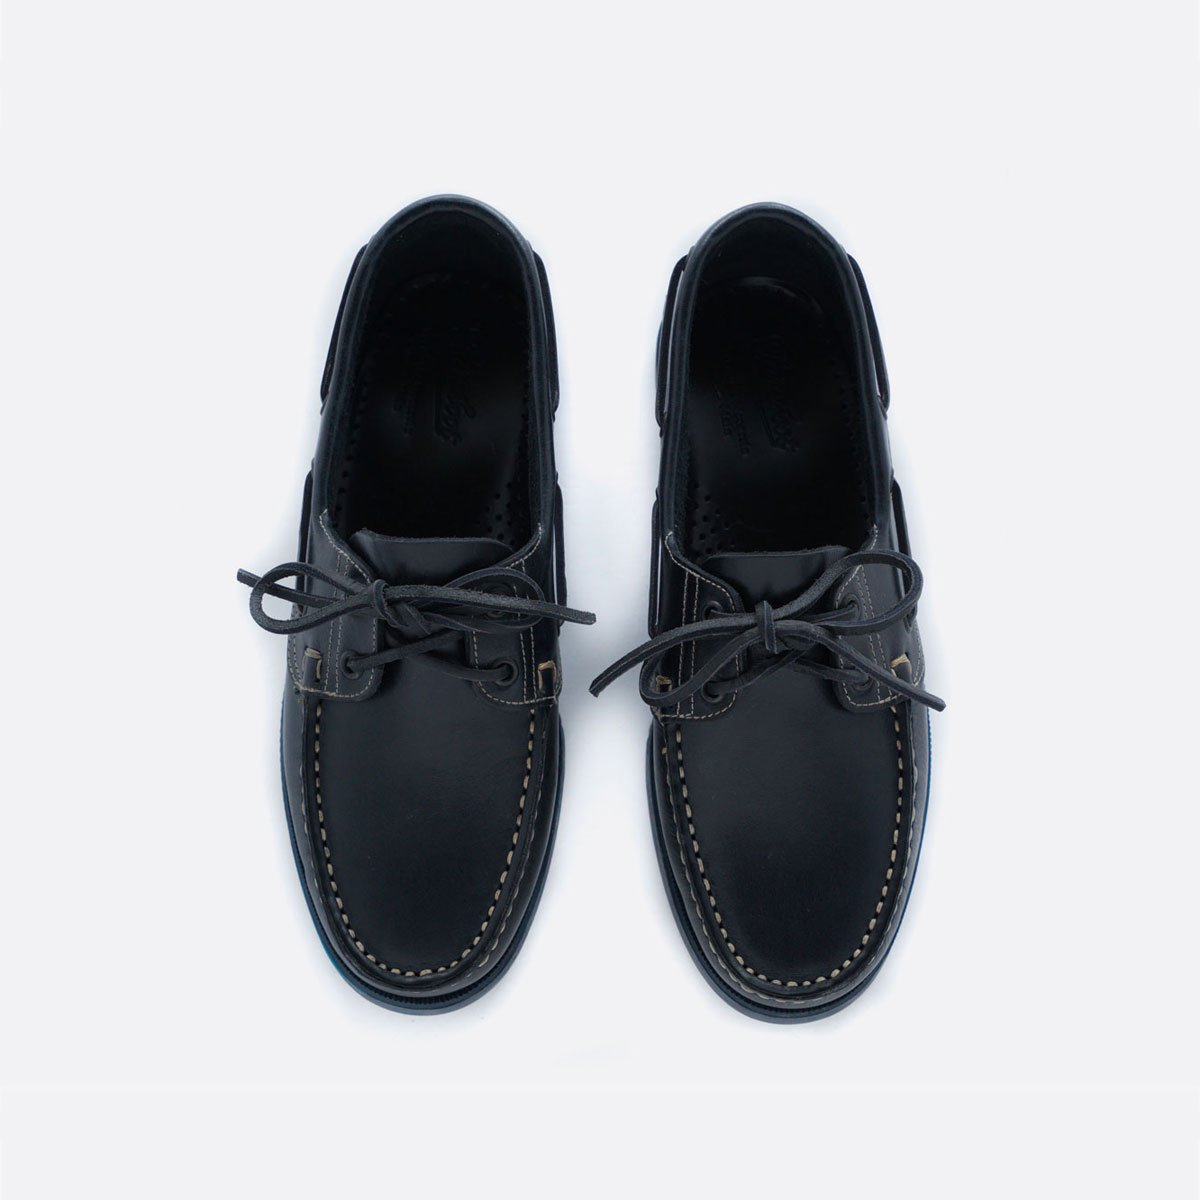 PARABOOT BARTH DECK SHOES (MARINE NAVY)2